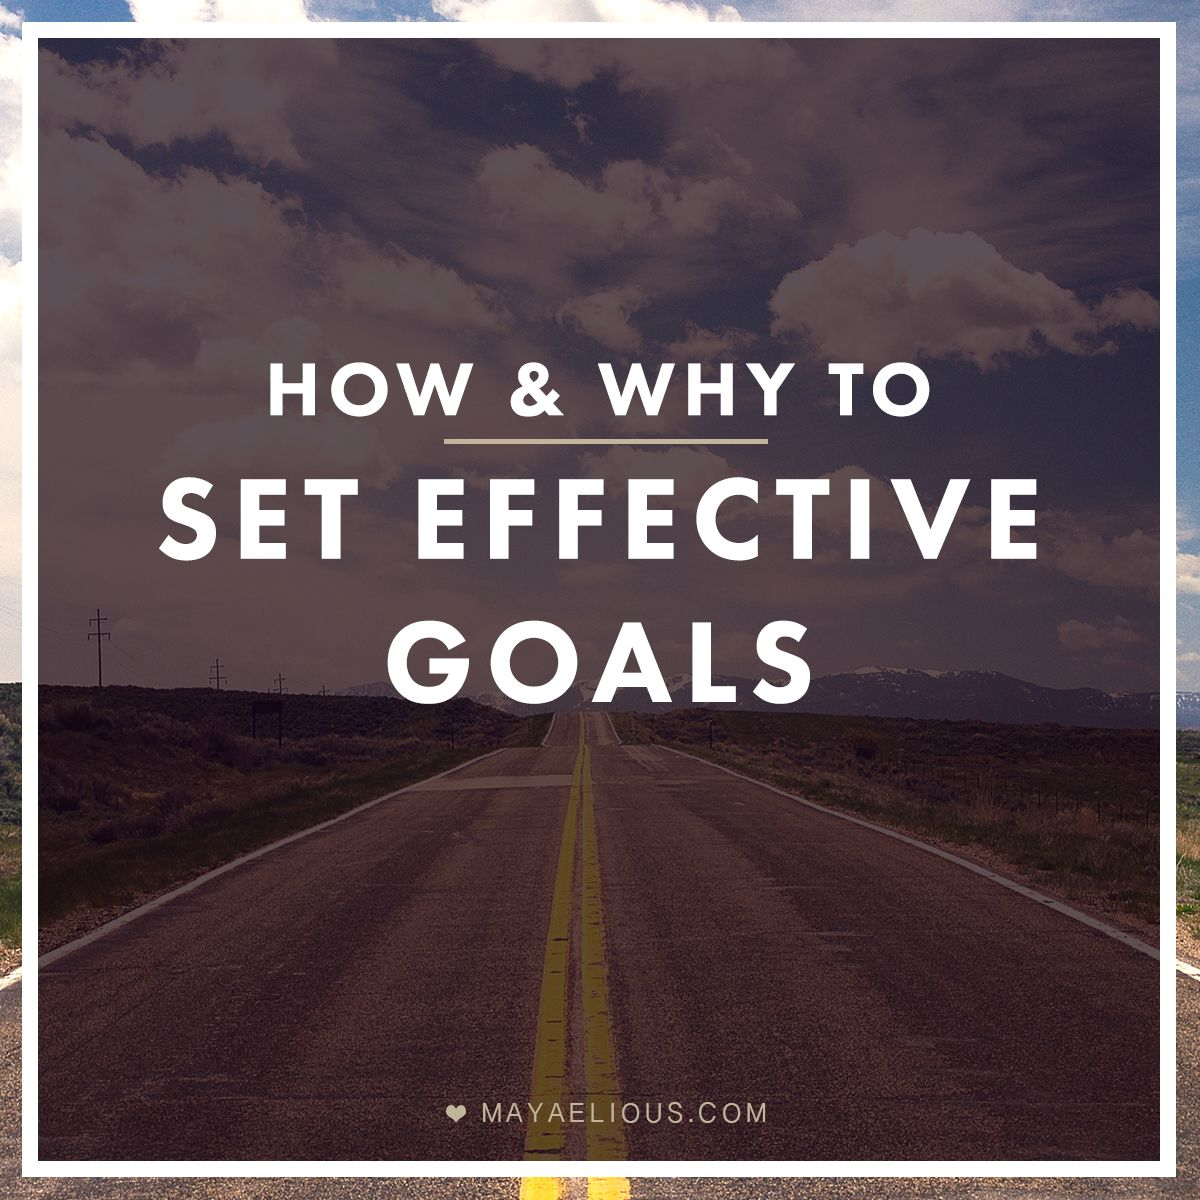 How & Why To Set Effective Goals